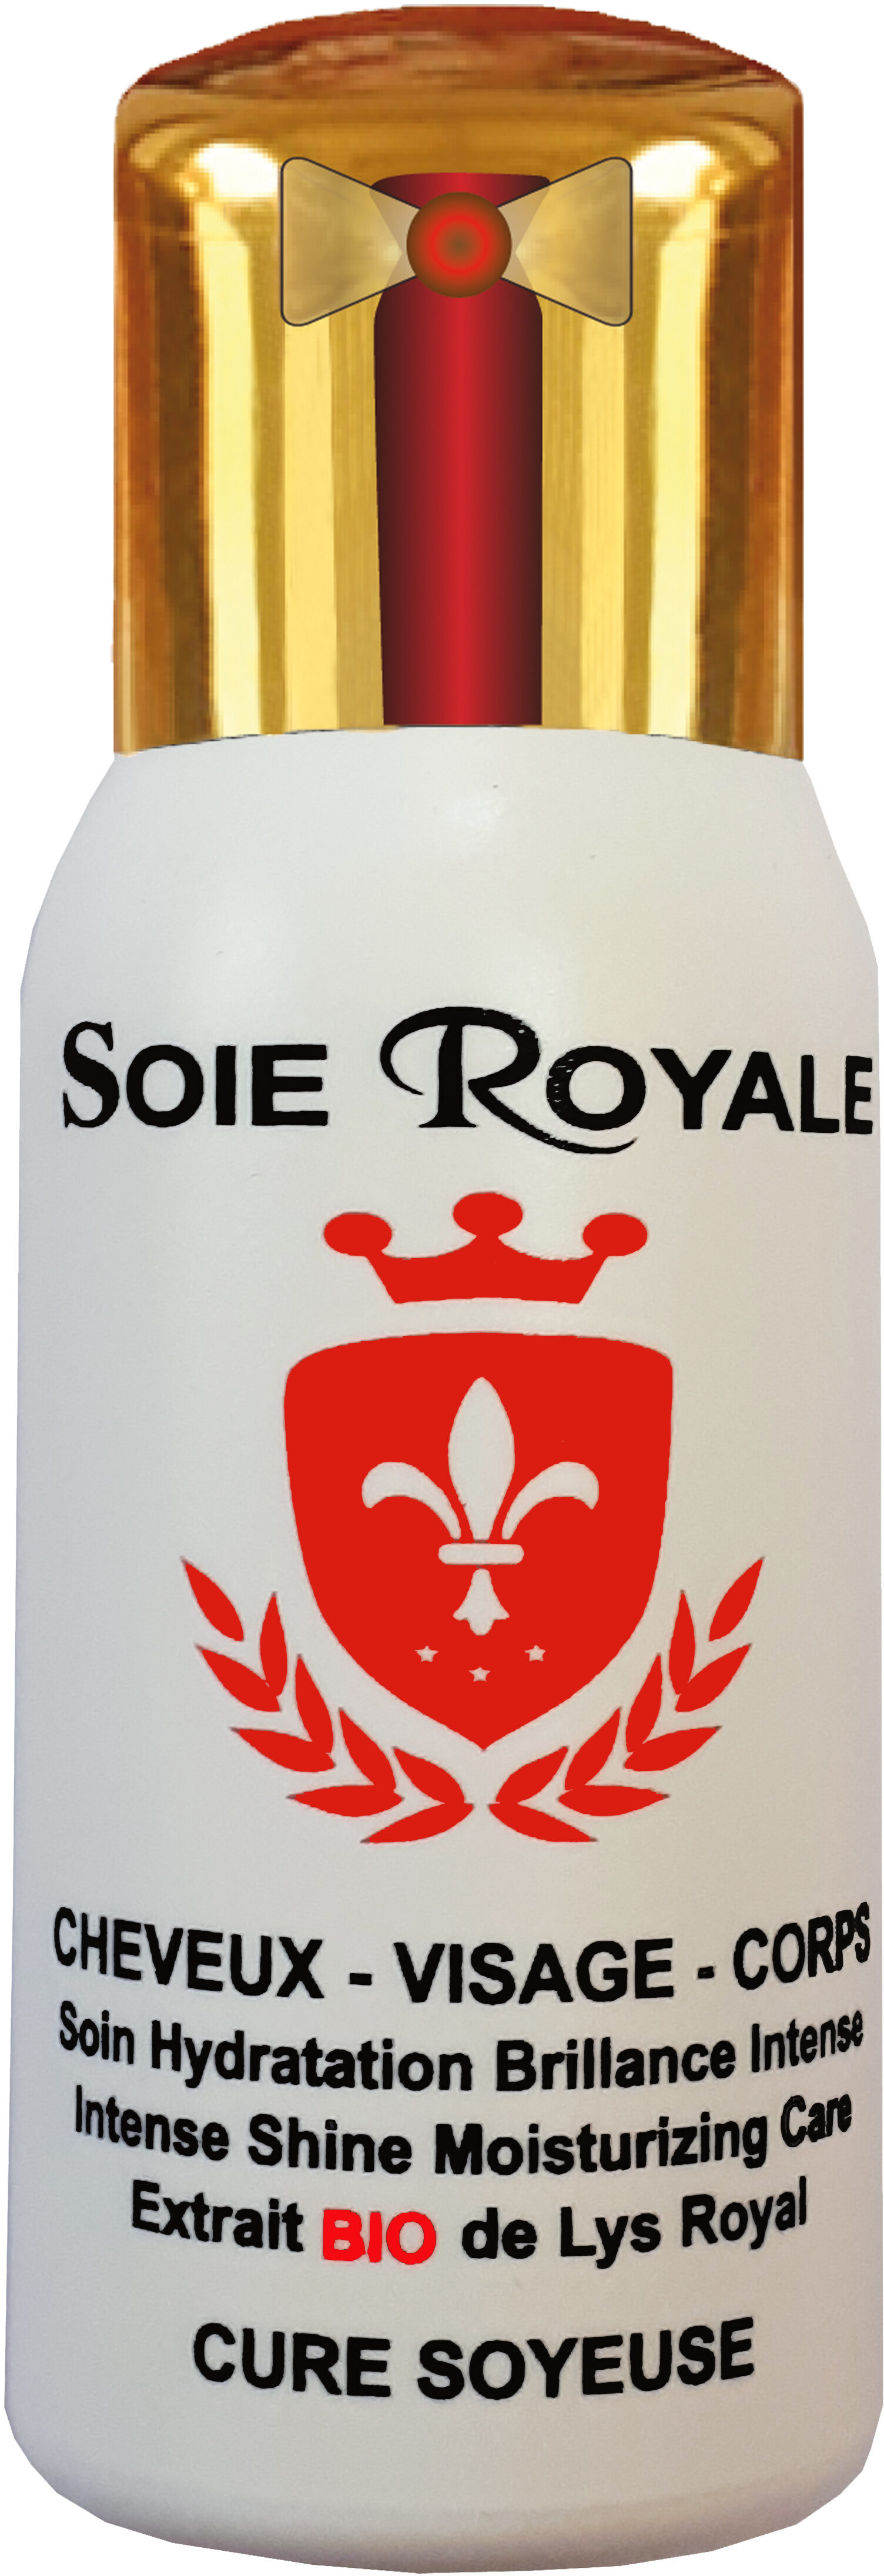 Soie royale BIO Cure Soyeuse Soin Hydratation Brillance Intense Cheveux Visage Corps - Ingredients - fr